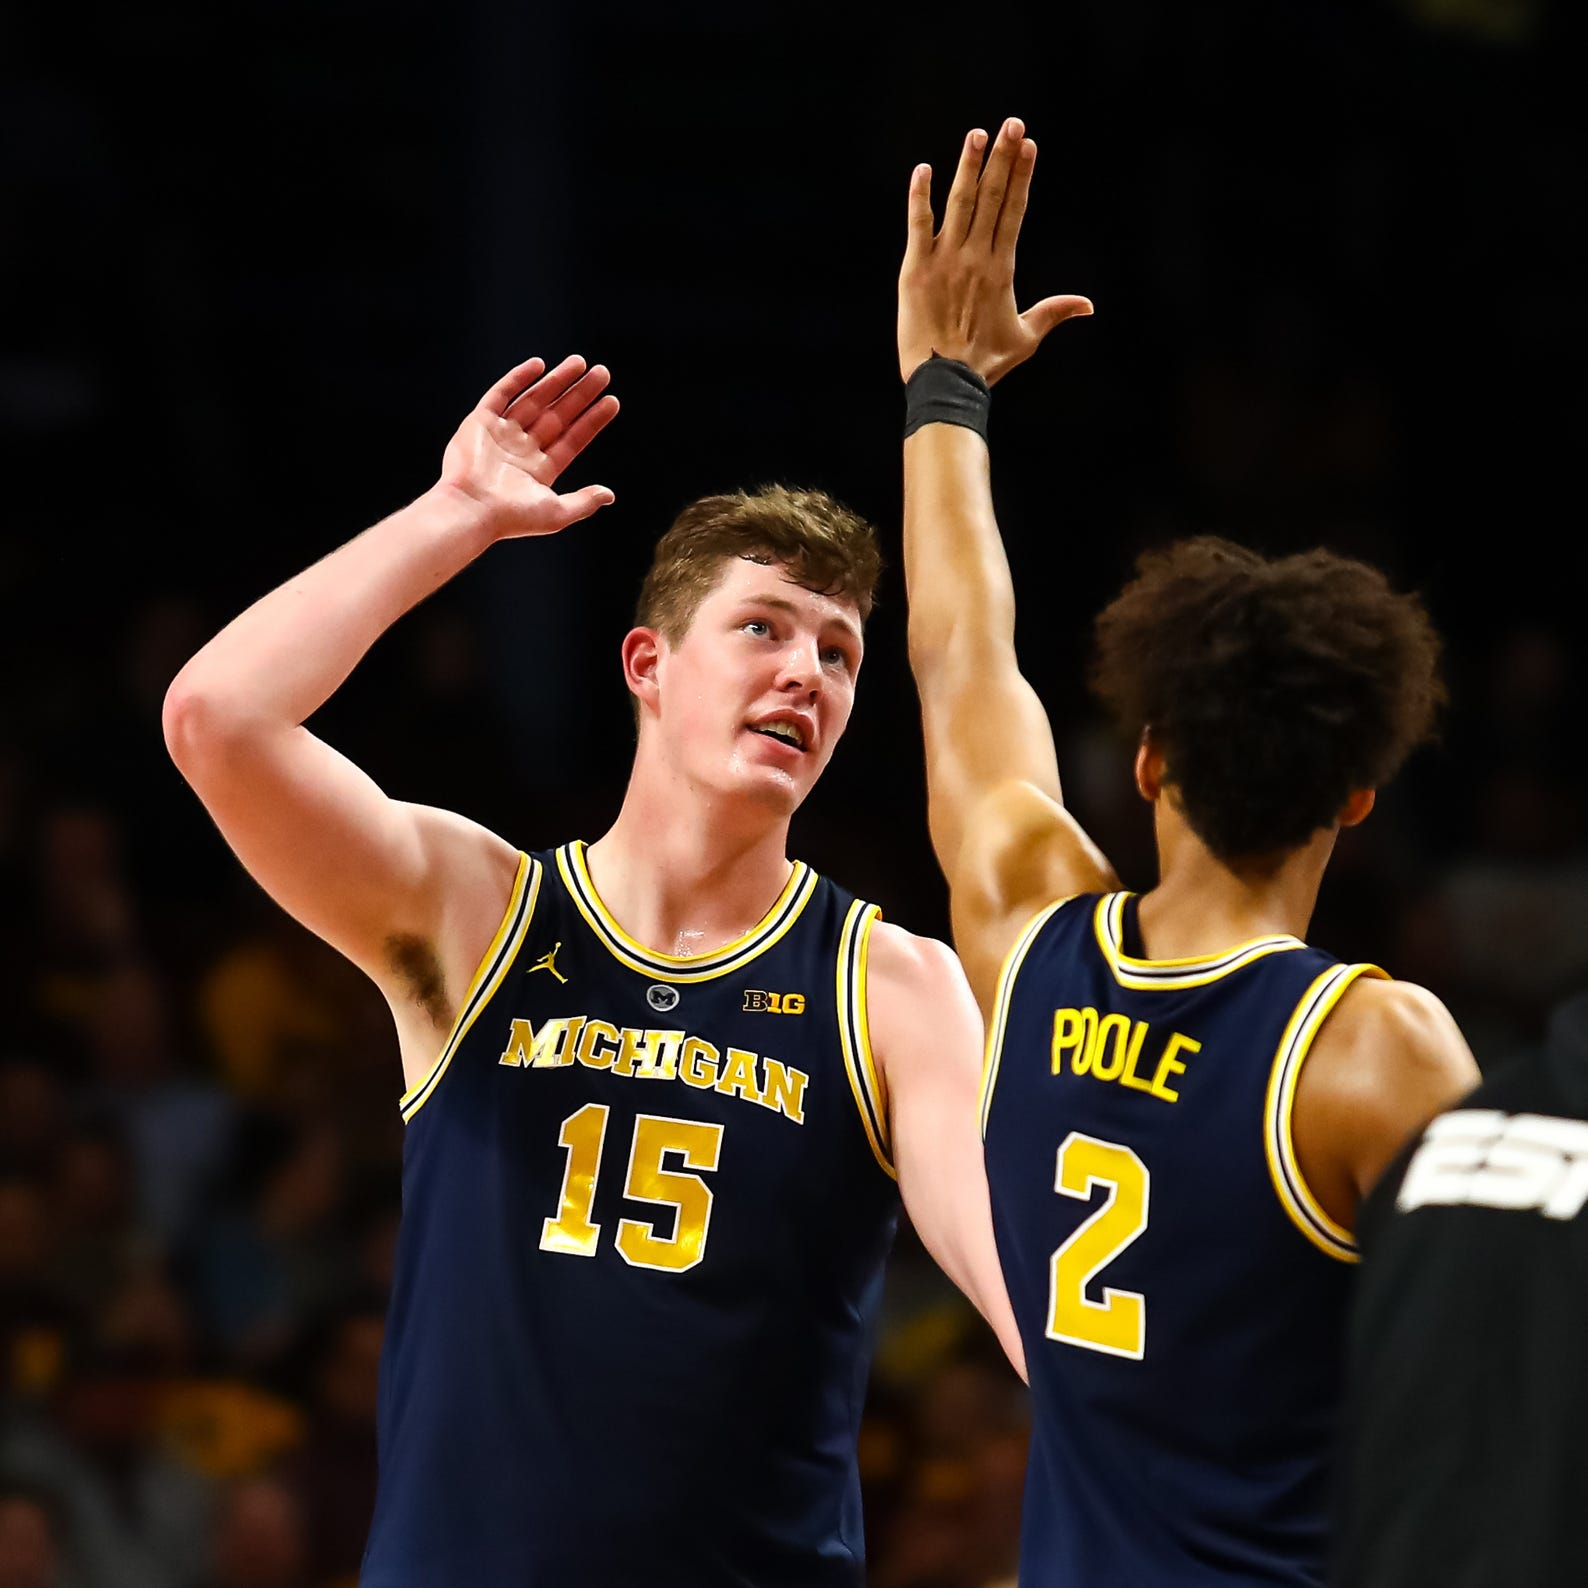 Michigan basketball coach John Beilein keeps pushing Jon Teske to shoot 3-pointers